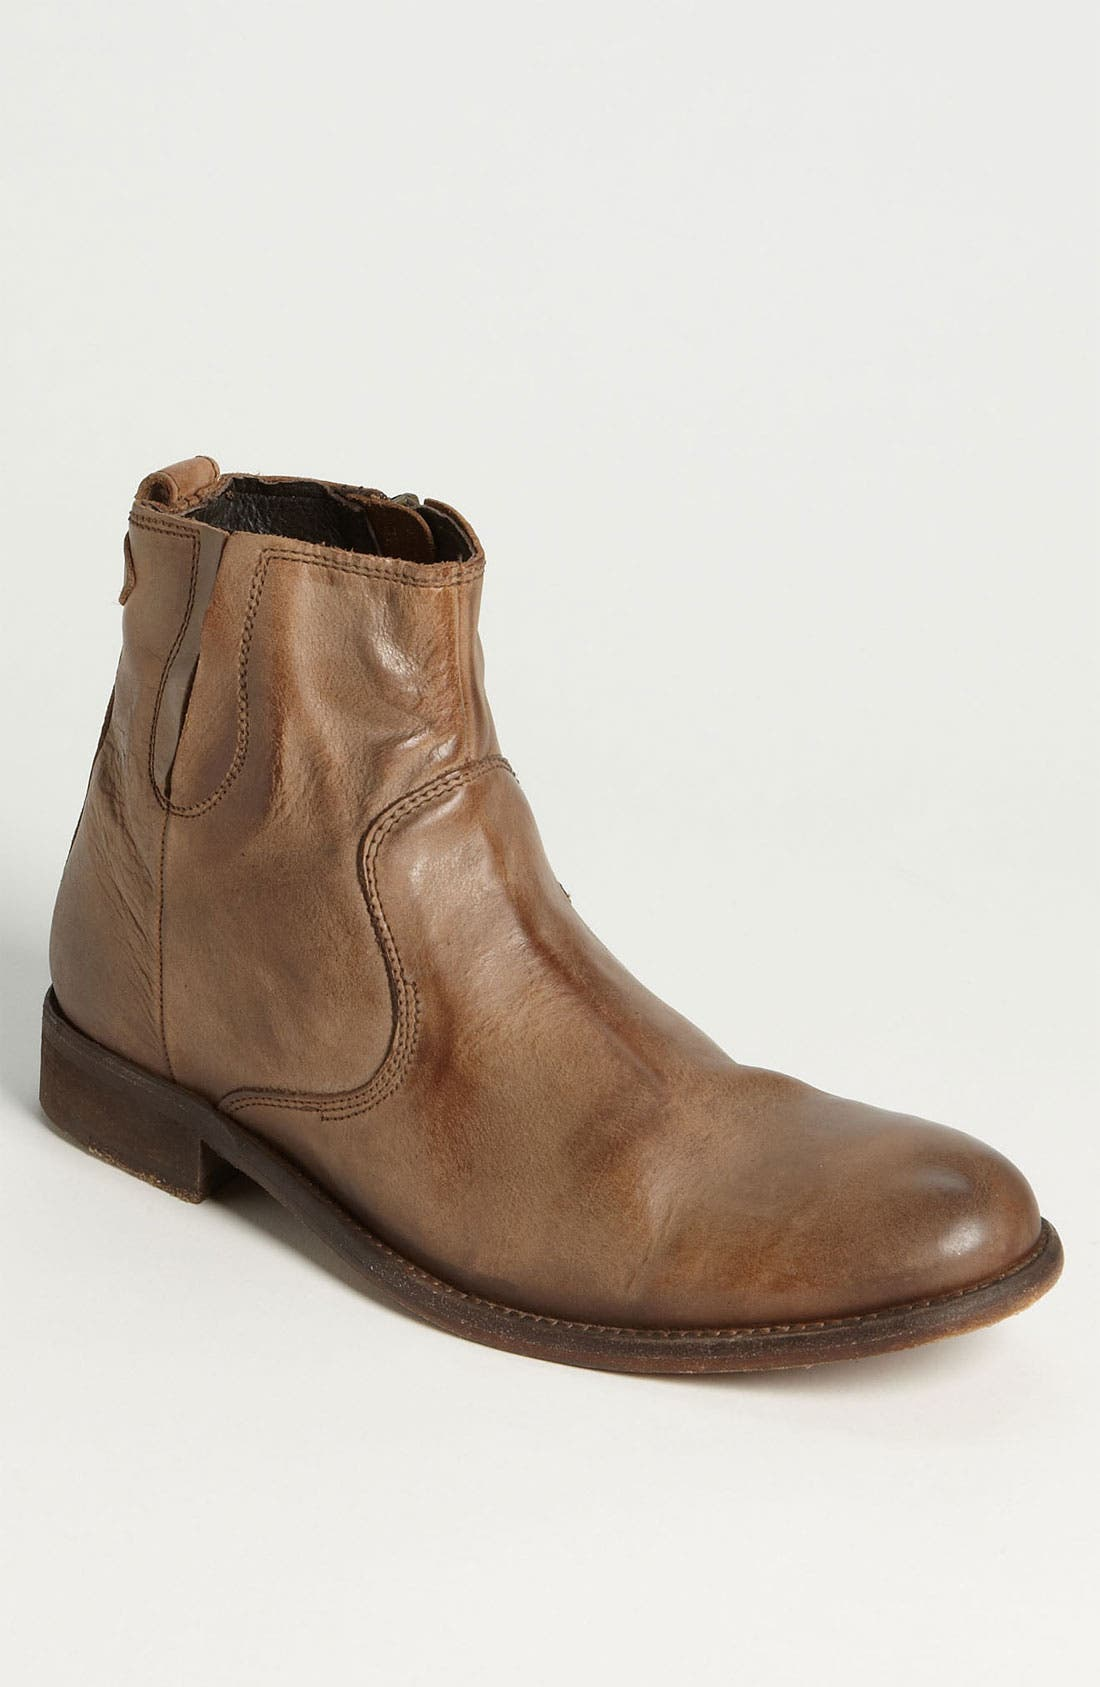 Alternate Image 1 Selected - Bacco Bucci 'Cotton' Boot (Men)